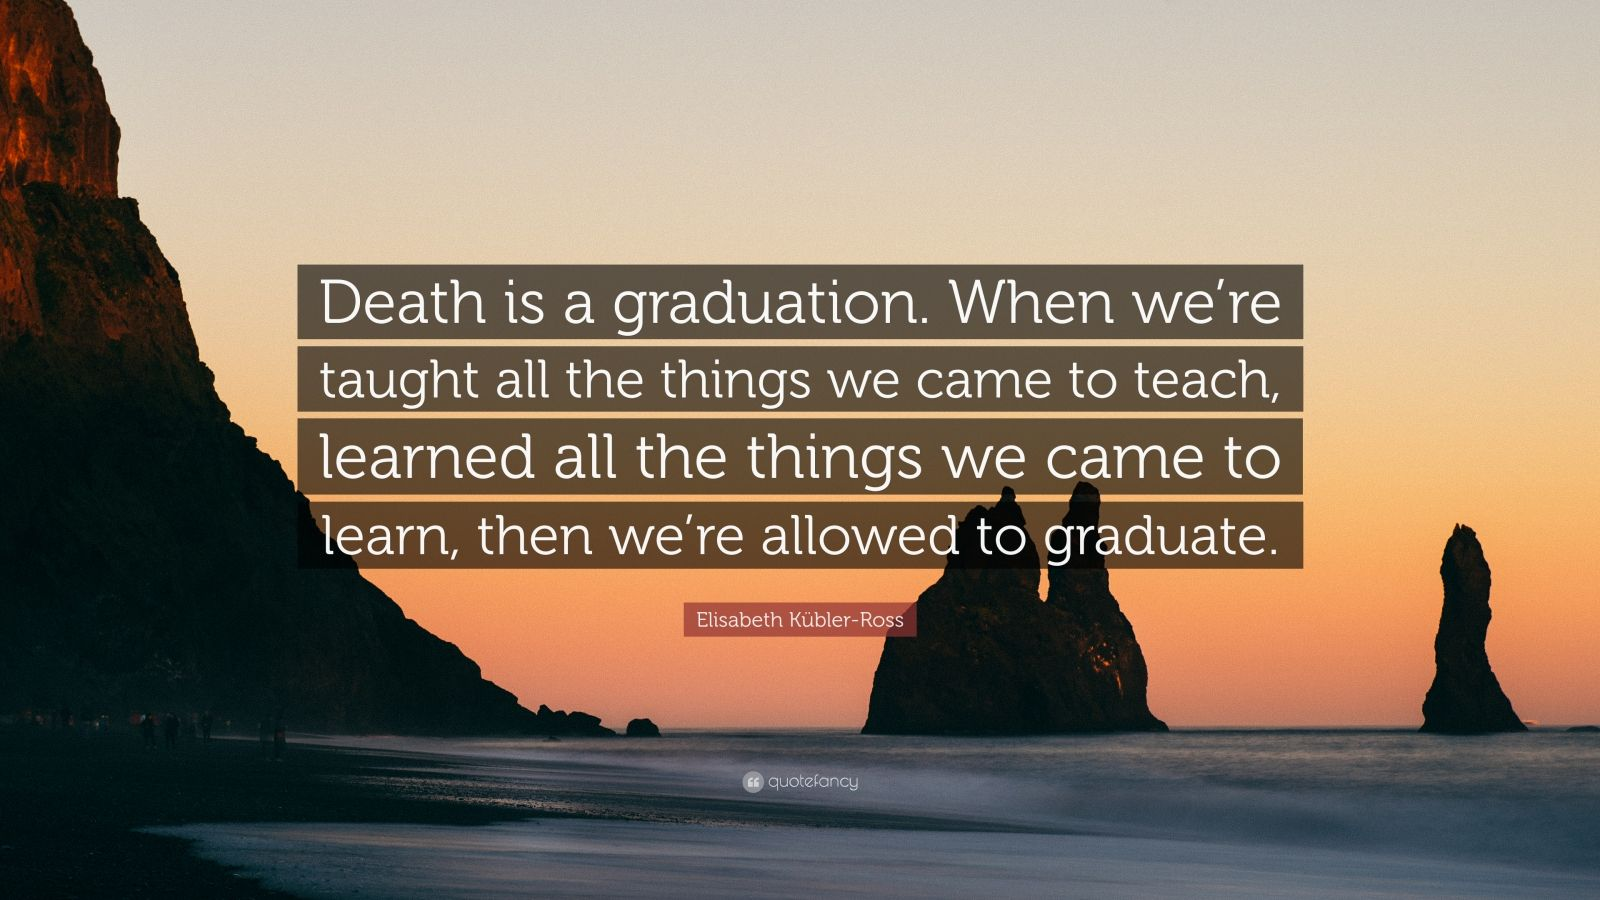 """Elisabeth Kübler-Ross Quote: """"Death is a graduation. When we're taught all the things we came to teach, learned all the things we came to learn, then we're allowed to graduate."""""""